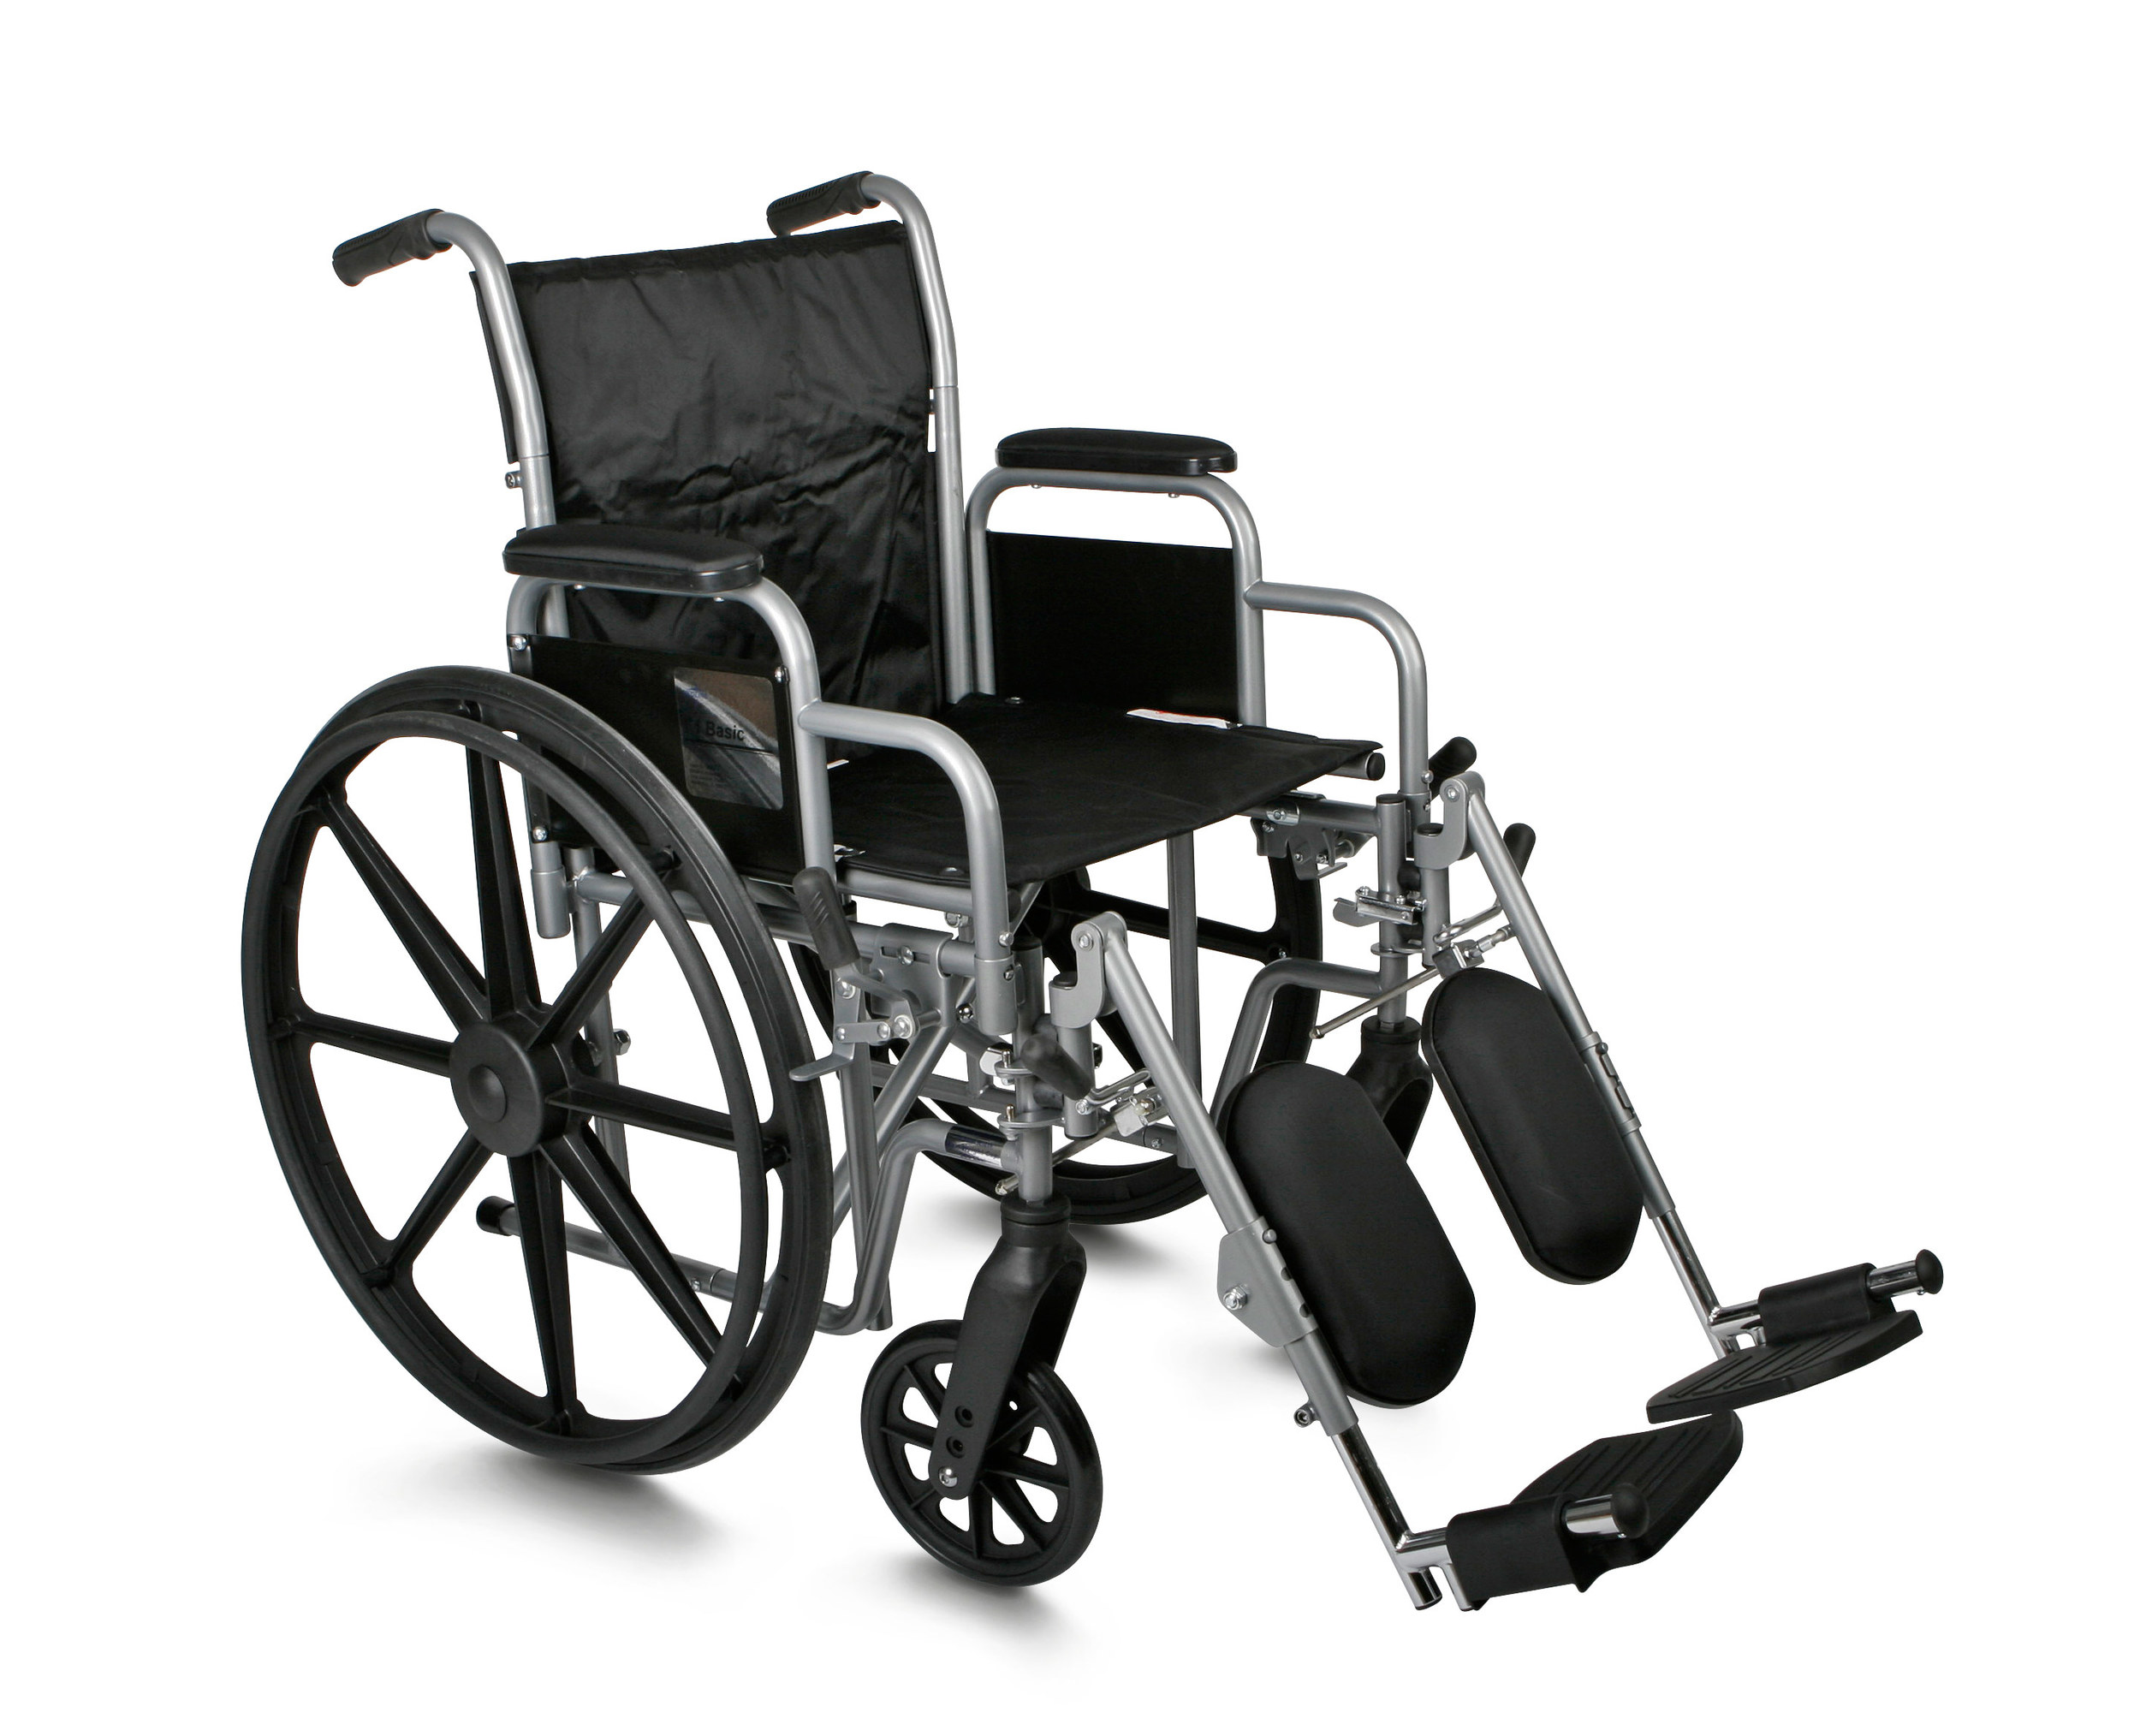 Excel-K1-Wheelchair-w-Removable-Arms-and-Detachab-d073b1b8-b424-2d10-1f94-88e6f00ca30e.jpg